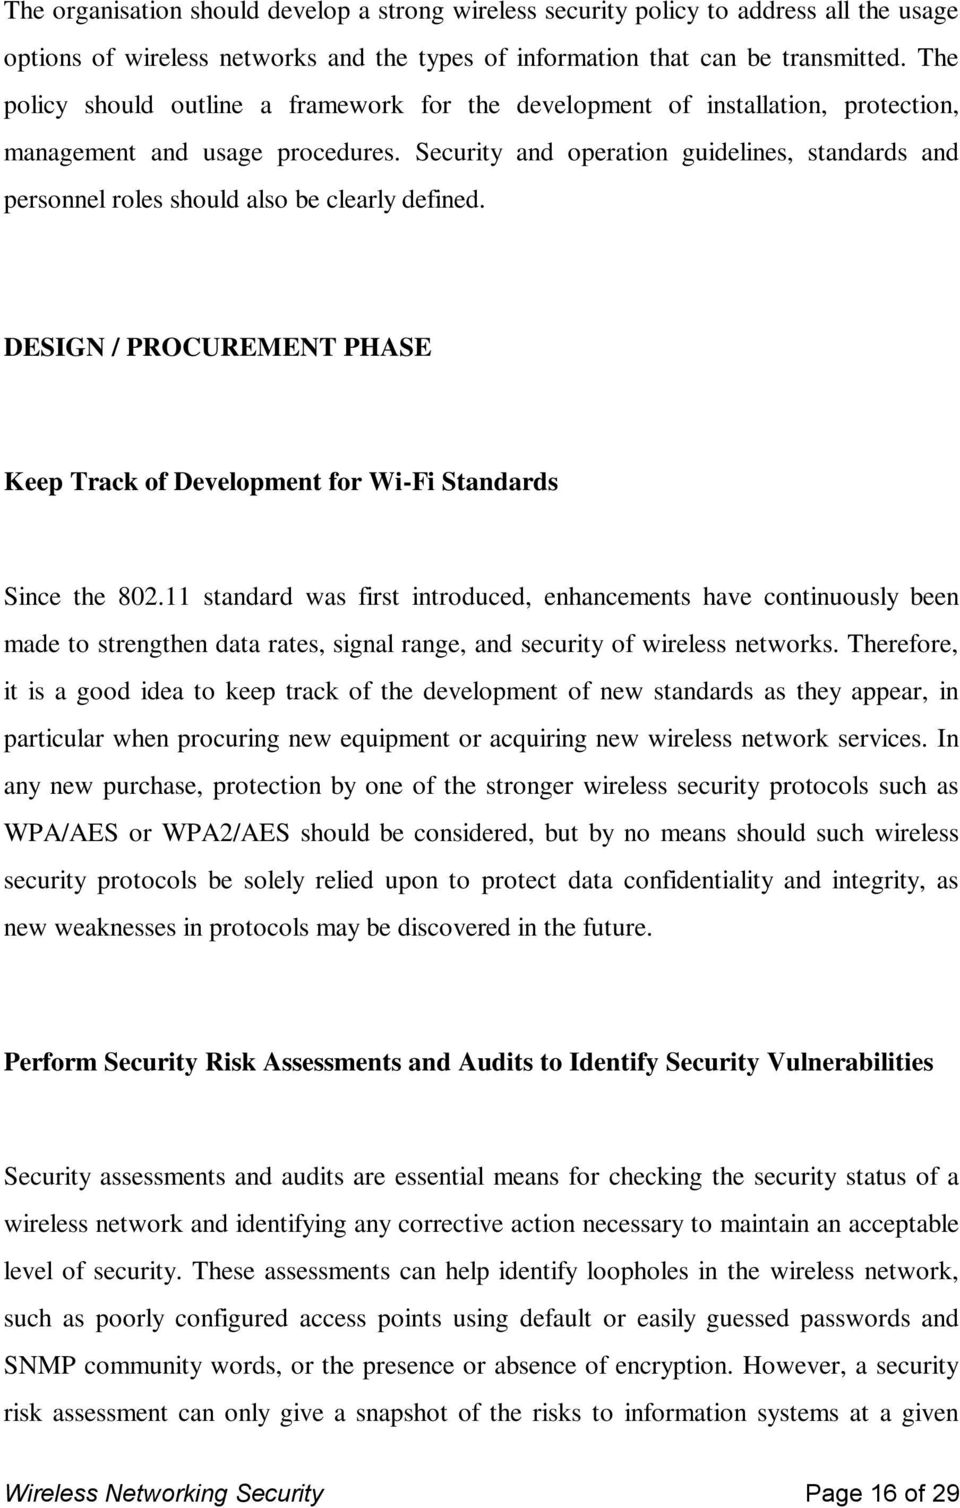 Security and operation guidelines, standards and personnel roles should also be clearly defined. DESIGN / PROCUREMENT PHASE Keep Track of Development for Wi-Fi Standards Since the 802.